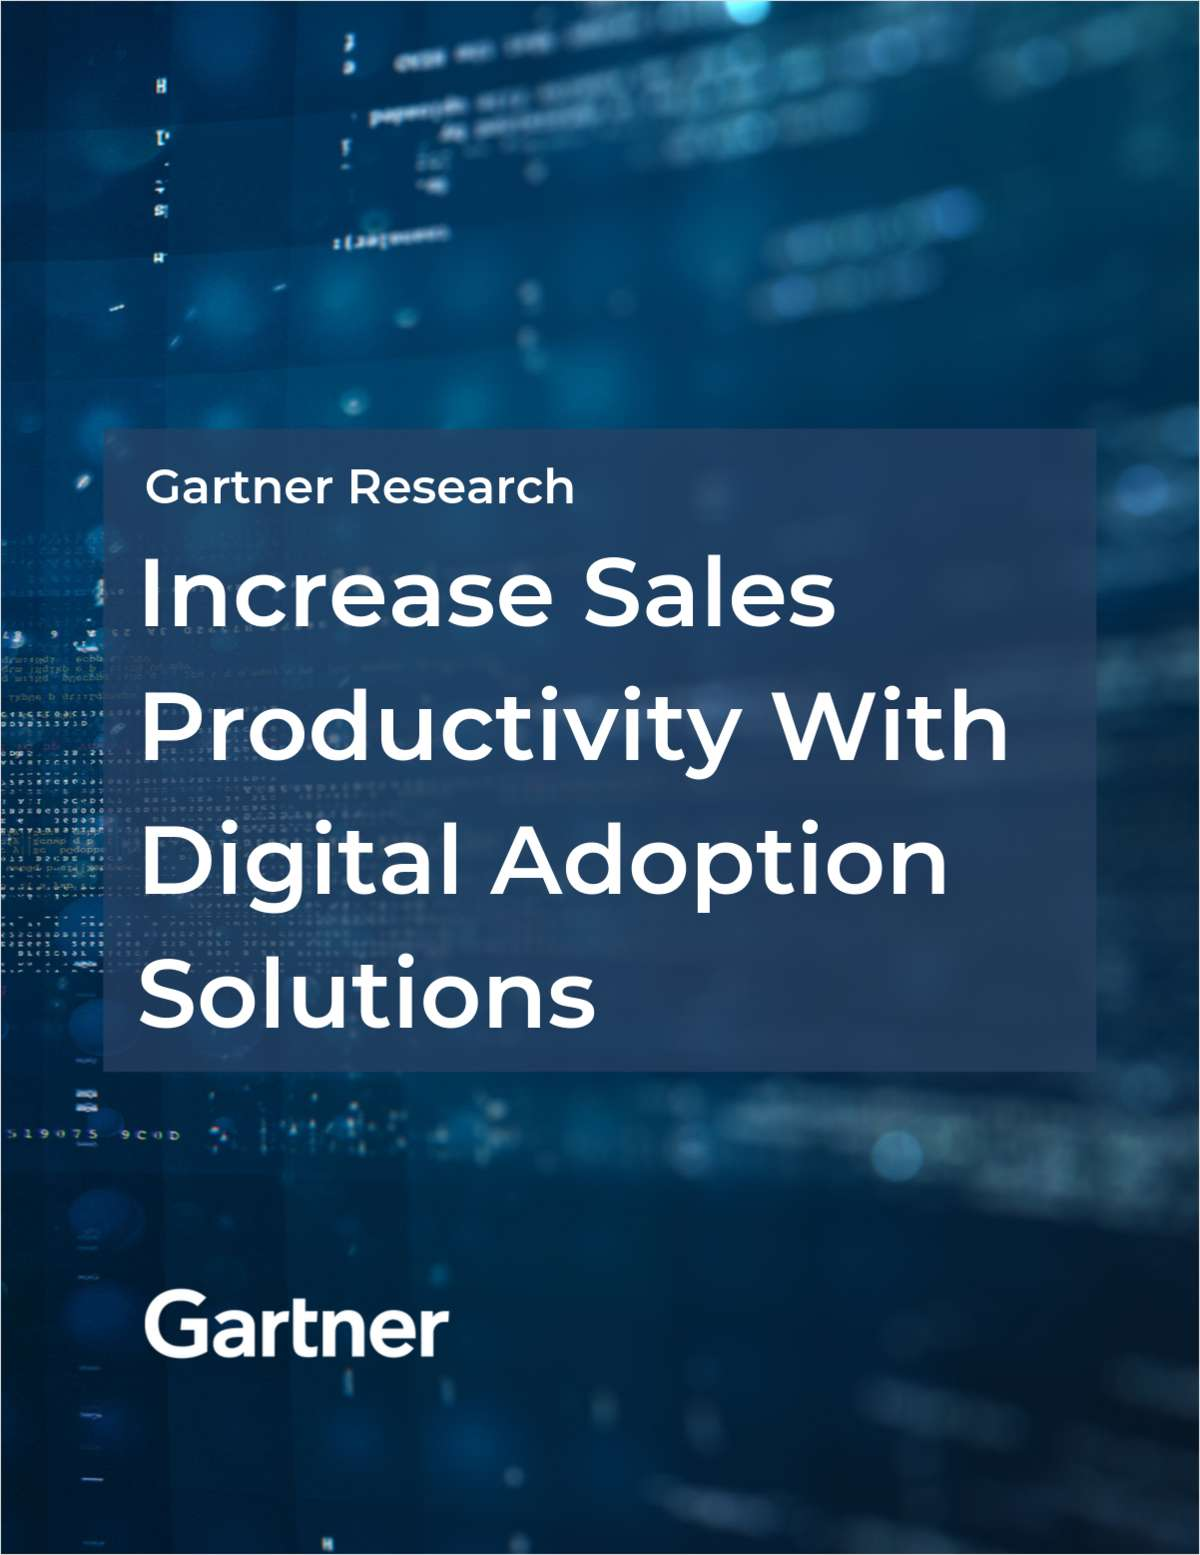 Increase Sales Productivity With Digital Adoption Solutions- Gartner's Report